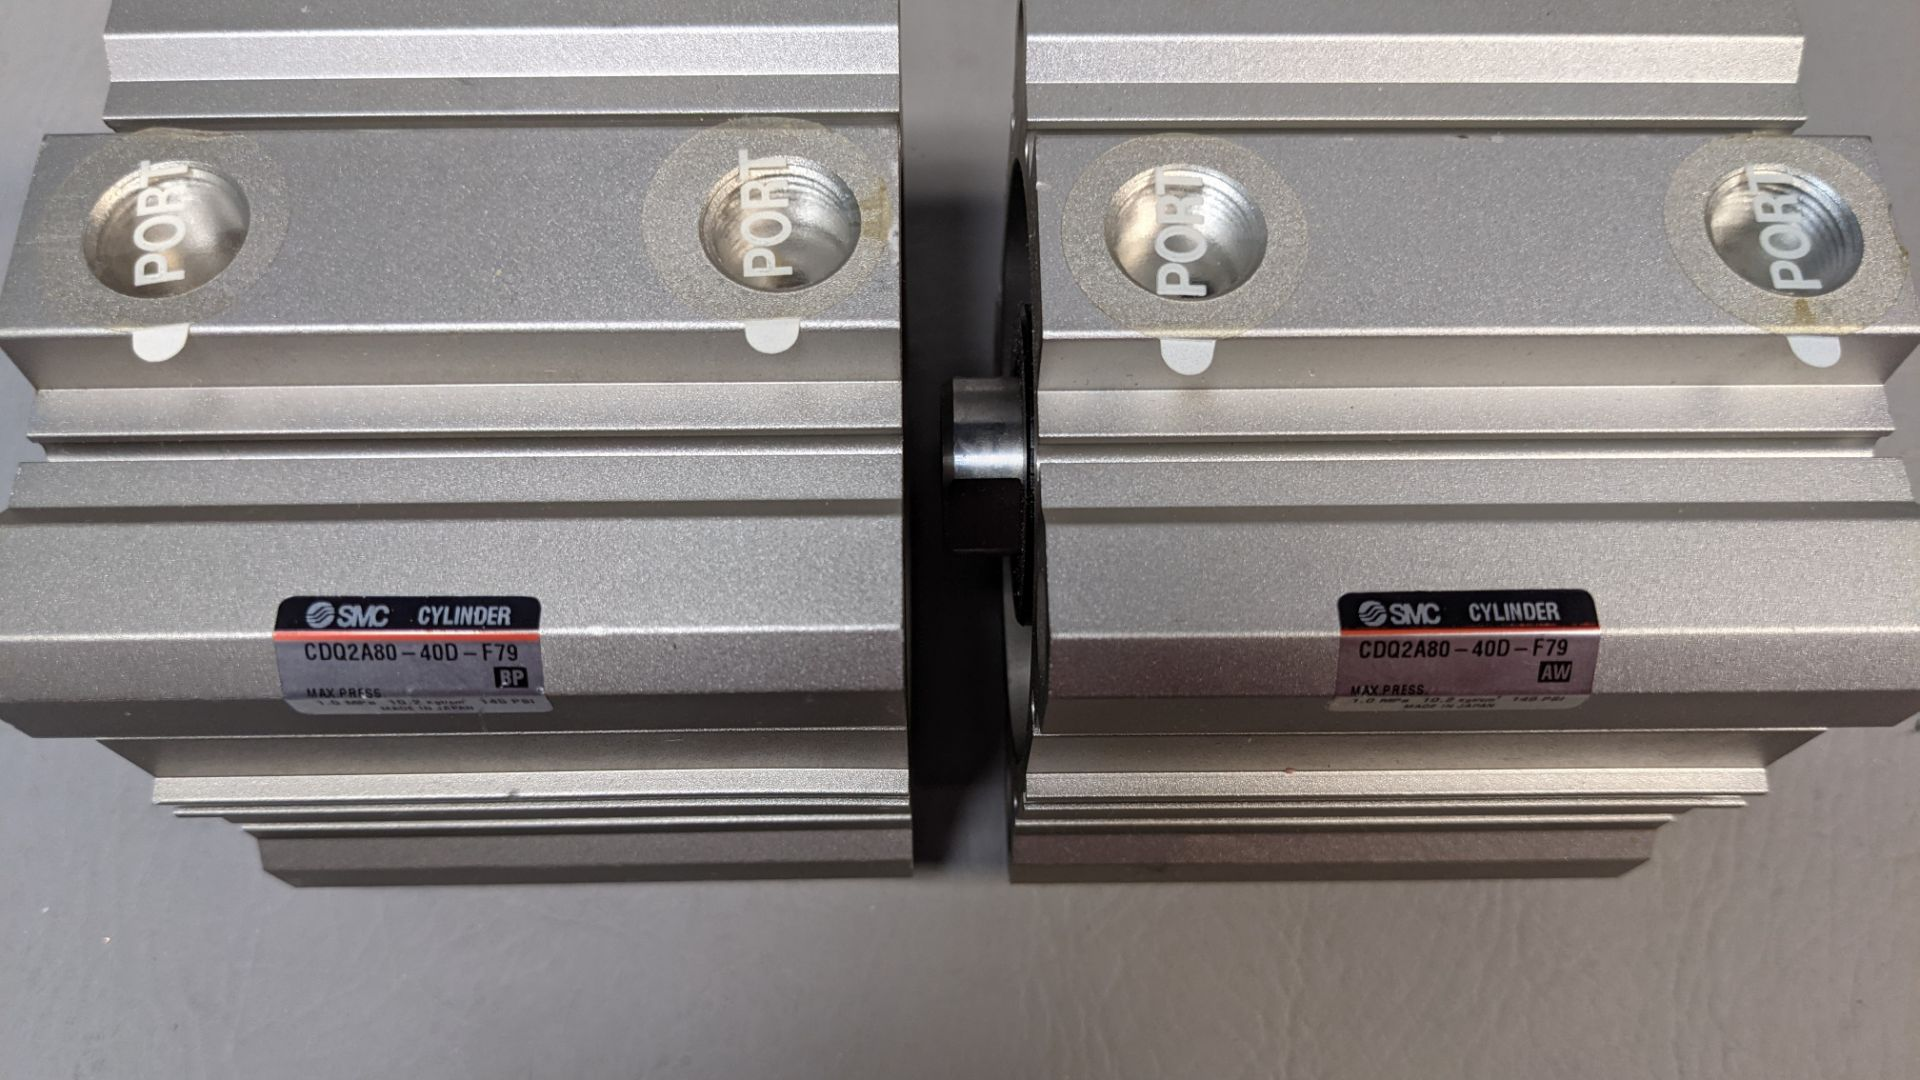 2 NEW SMC PNEUMATIC CYLINDERS - Image 2 of 2